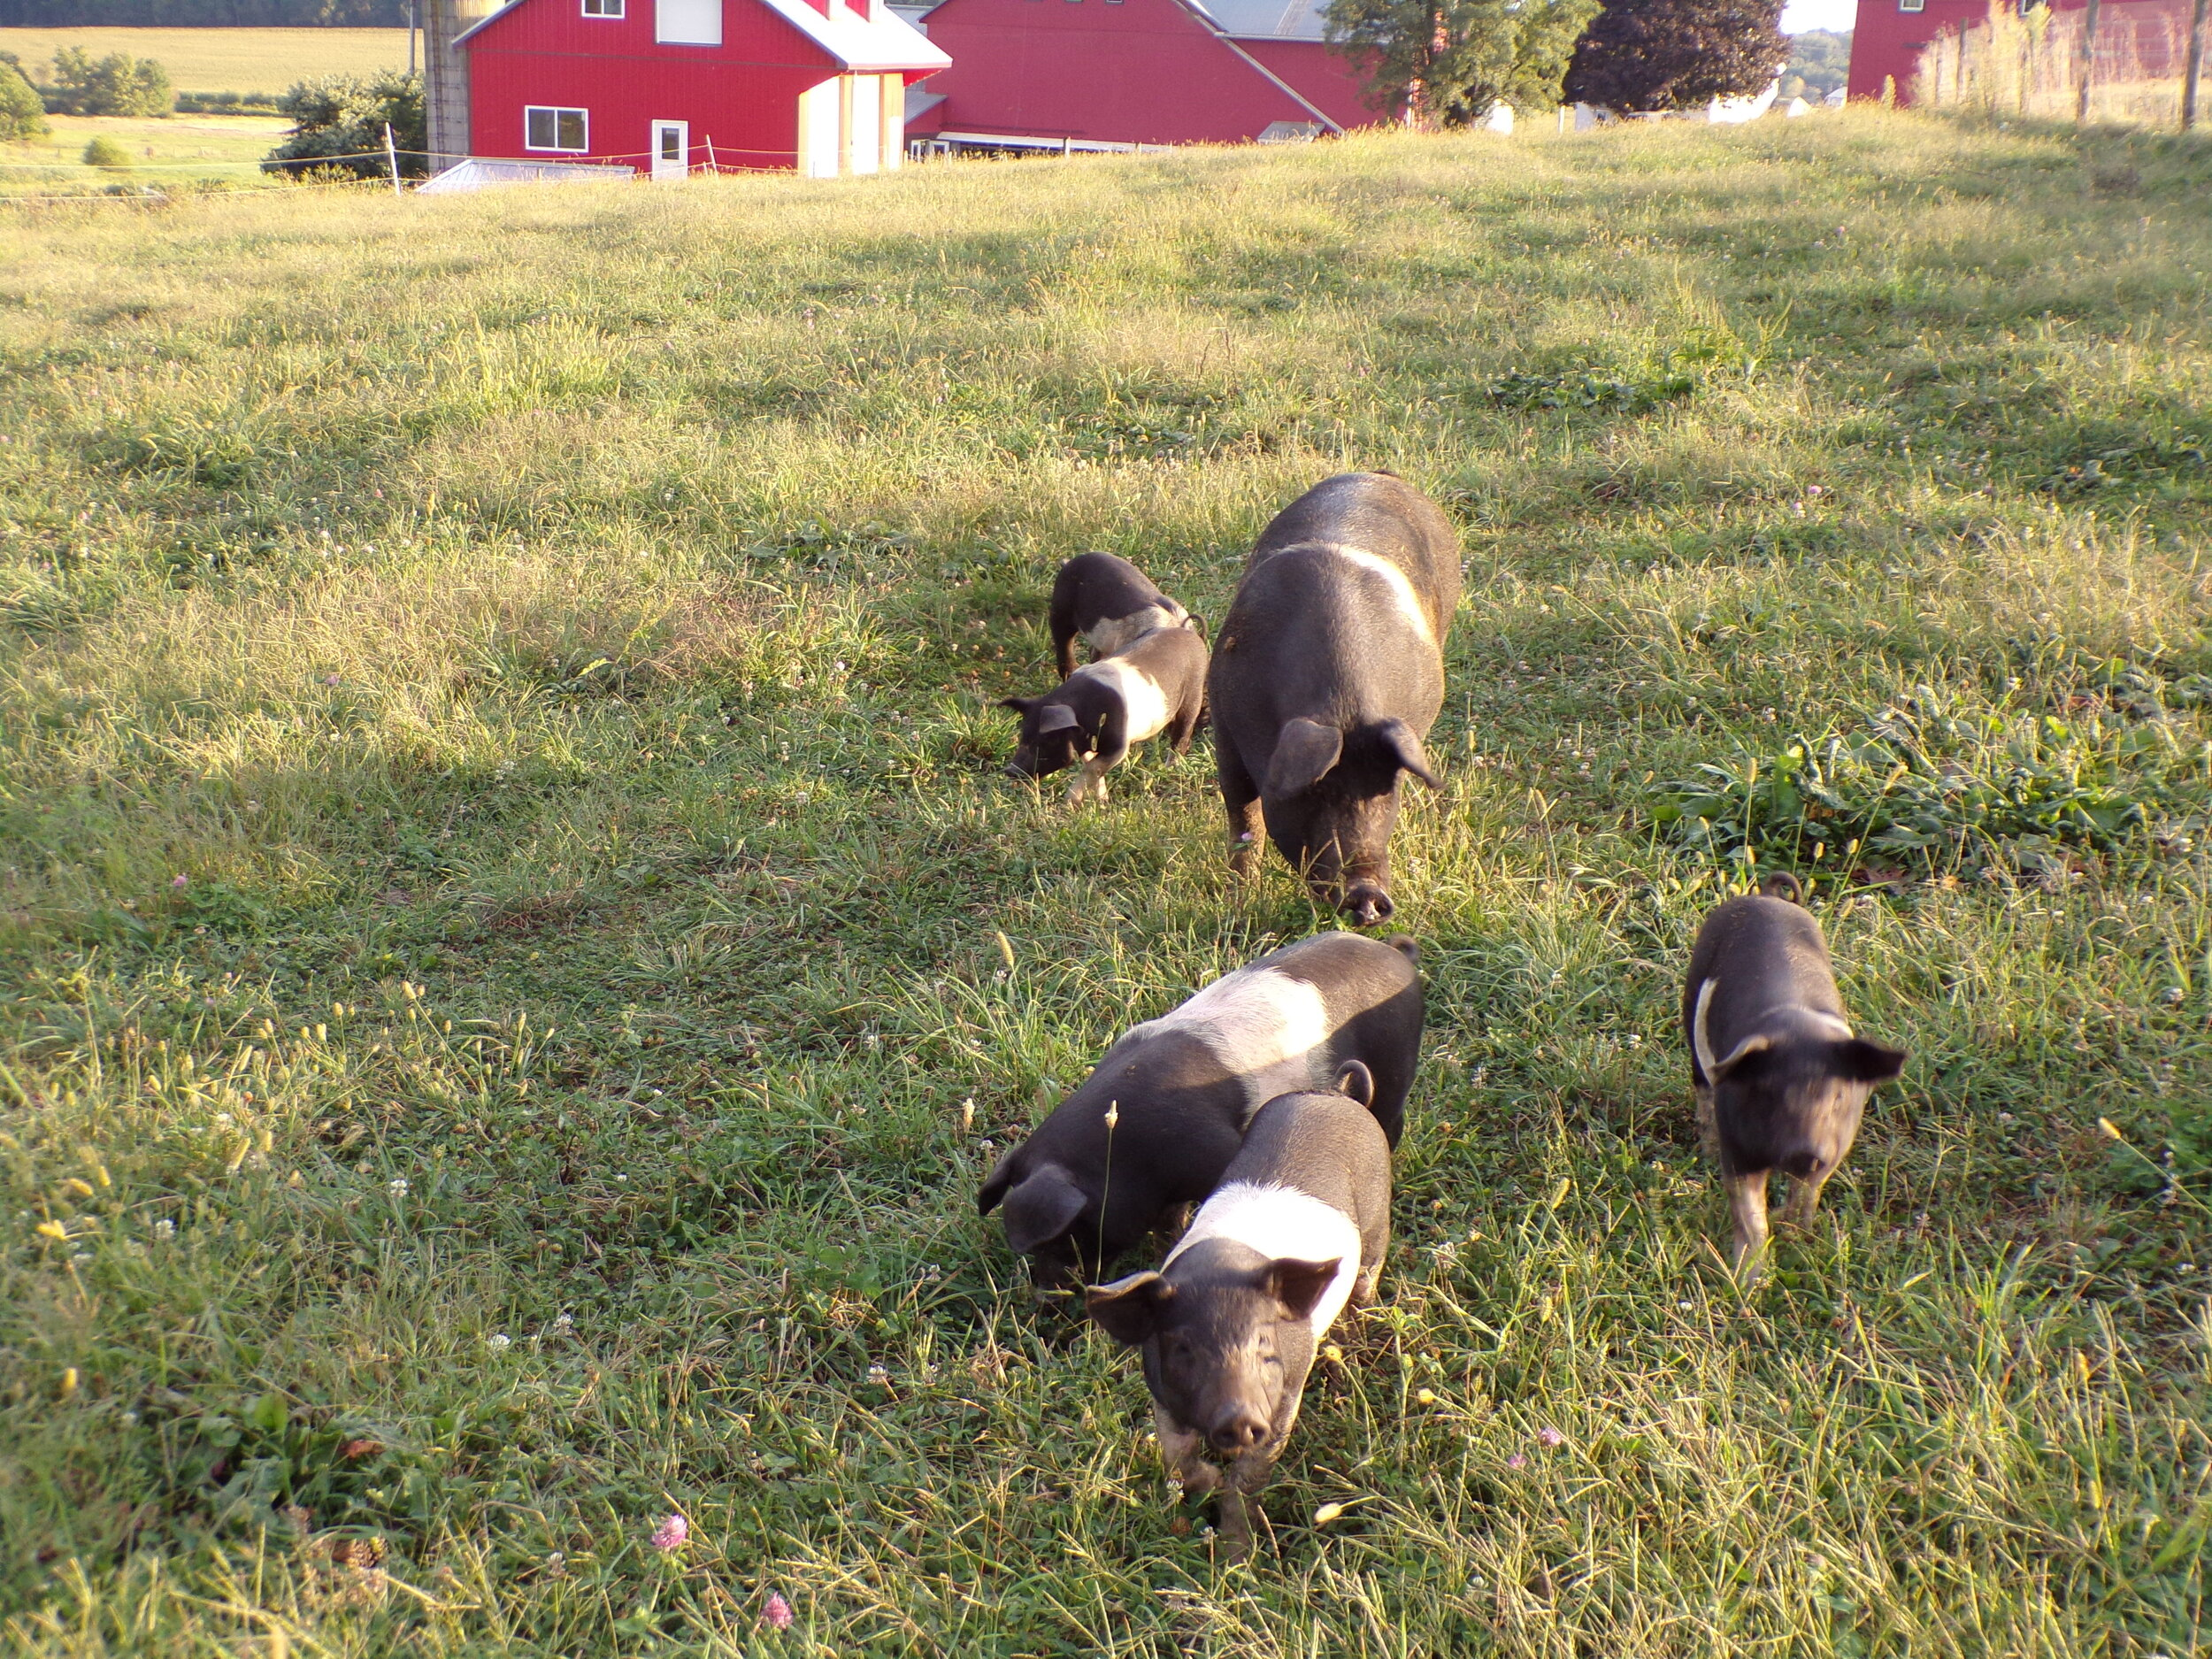 """The Pigs are very tame, and they are walking towards me, and they are wondering what I want! """"I just want to take pictures of you, Piglets."""""""